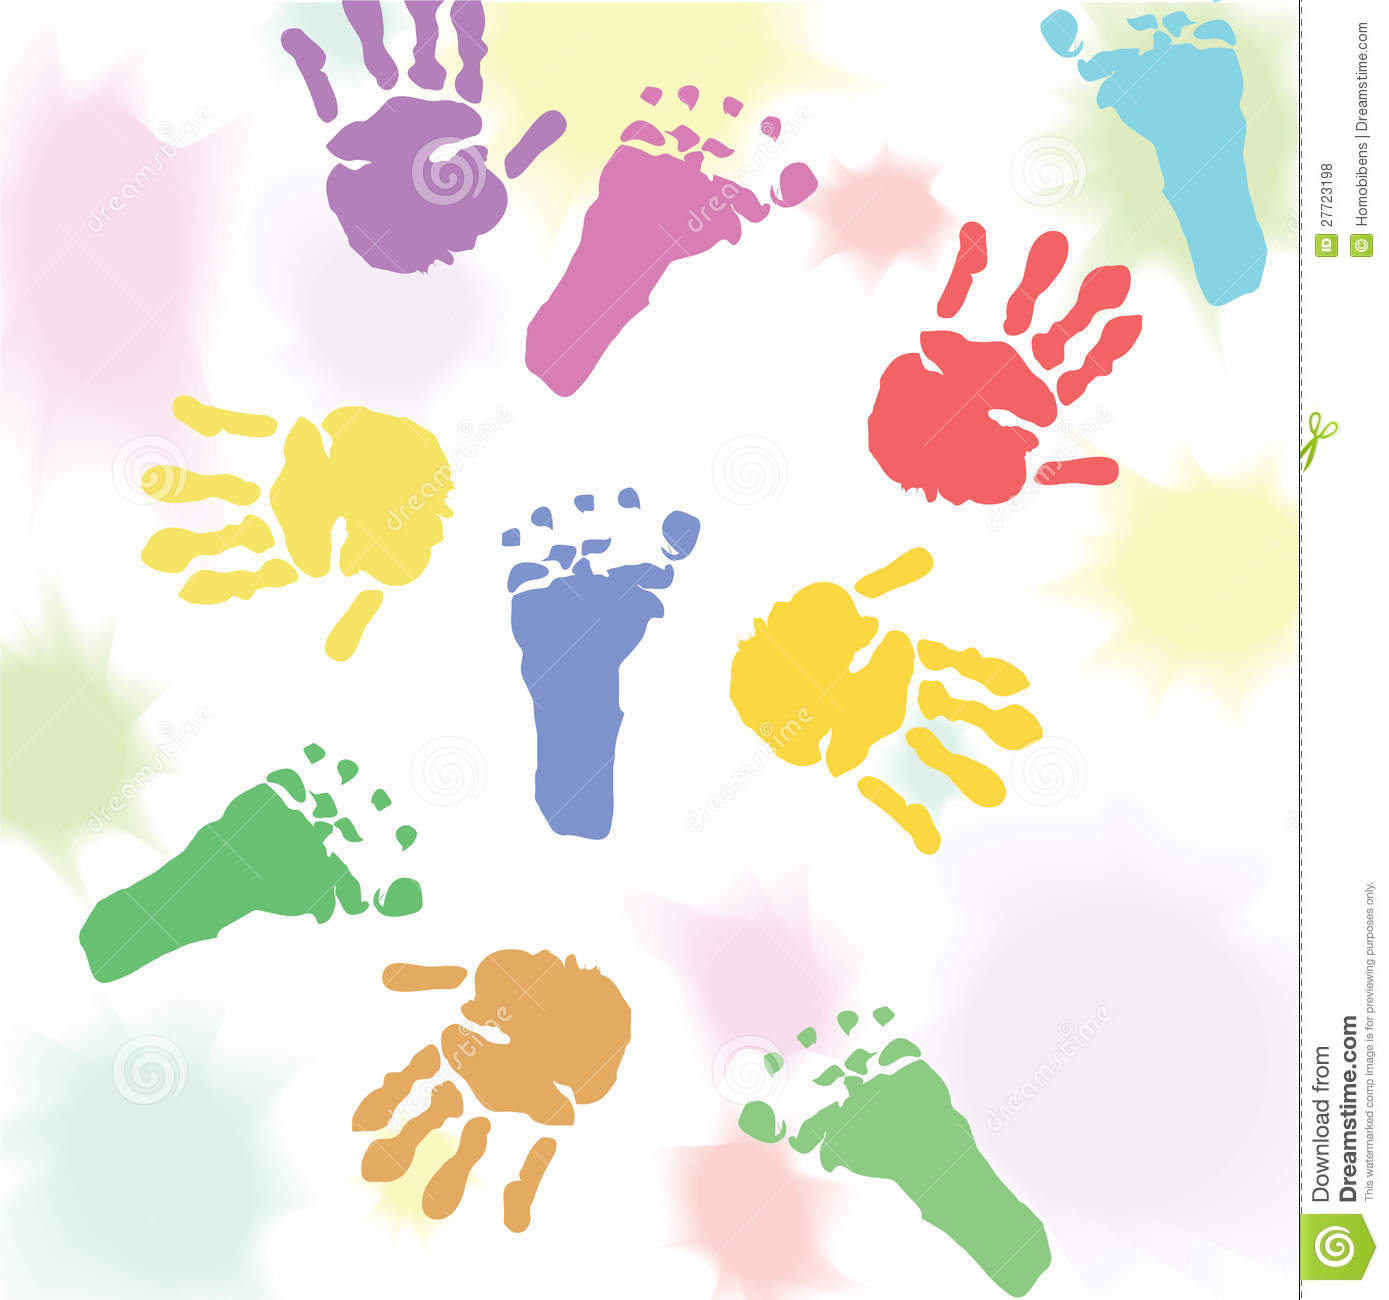 Prints baby hands and feet.